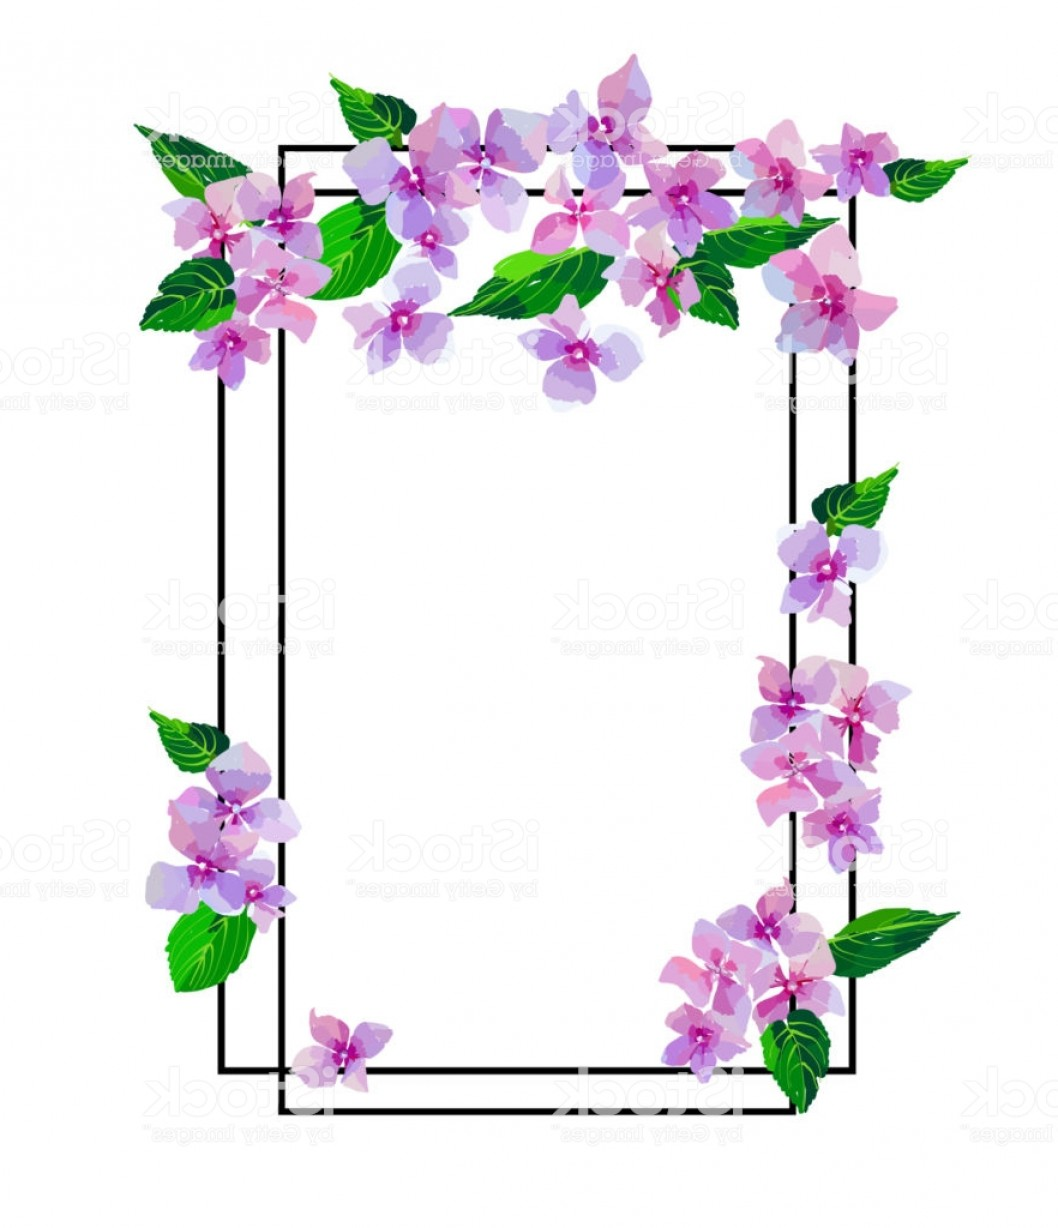 Lilac Vector Drawing: Garden Pink Hydrangea Flowers Botanical Illustration In Hand Drawn Style Lilac Gm